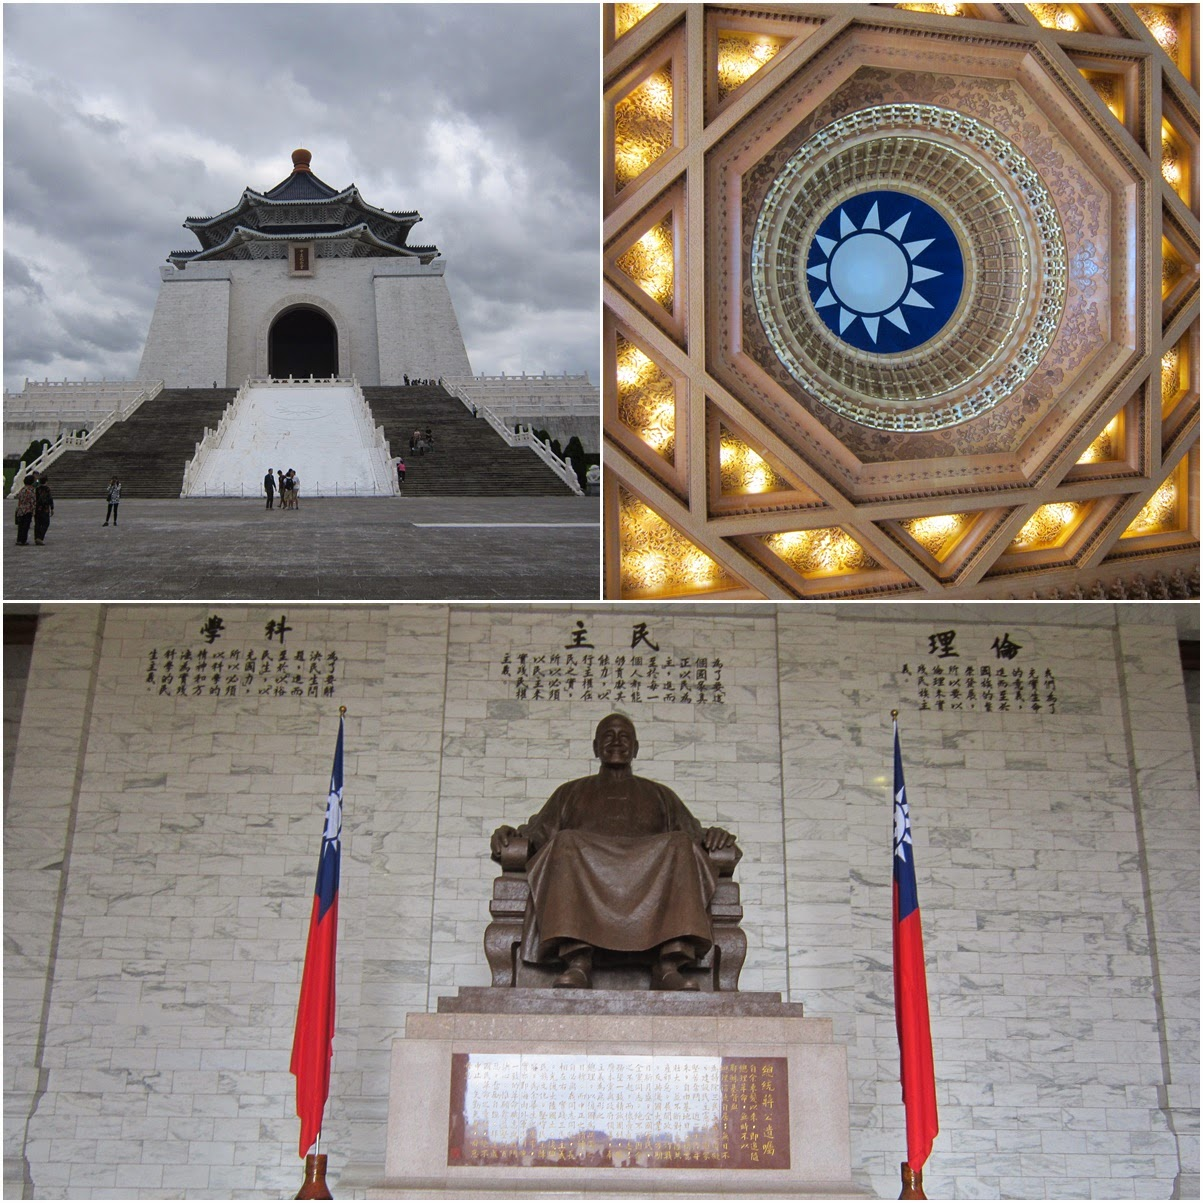 Clockwise from top left, Chiang Kai Shek Memorial Hall, Kuomintang (KMT) symbol on the ceiling and the bronze statue of Chiang Kai Shek at CSK Memorial Hall in Taipei, Taiwan